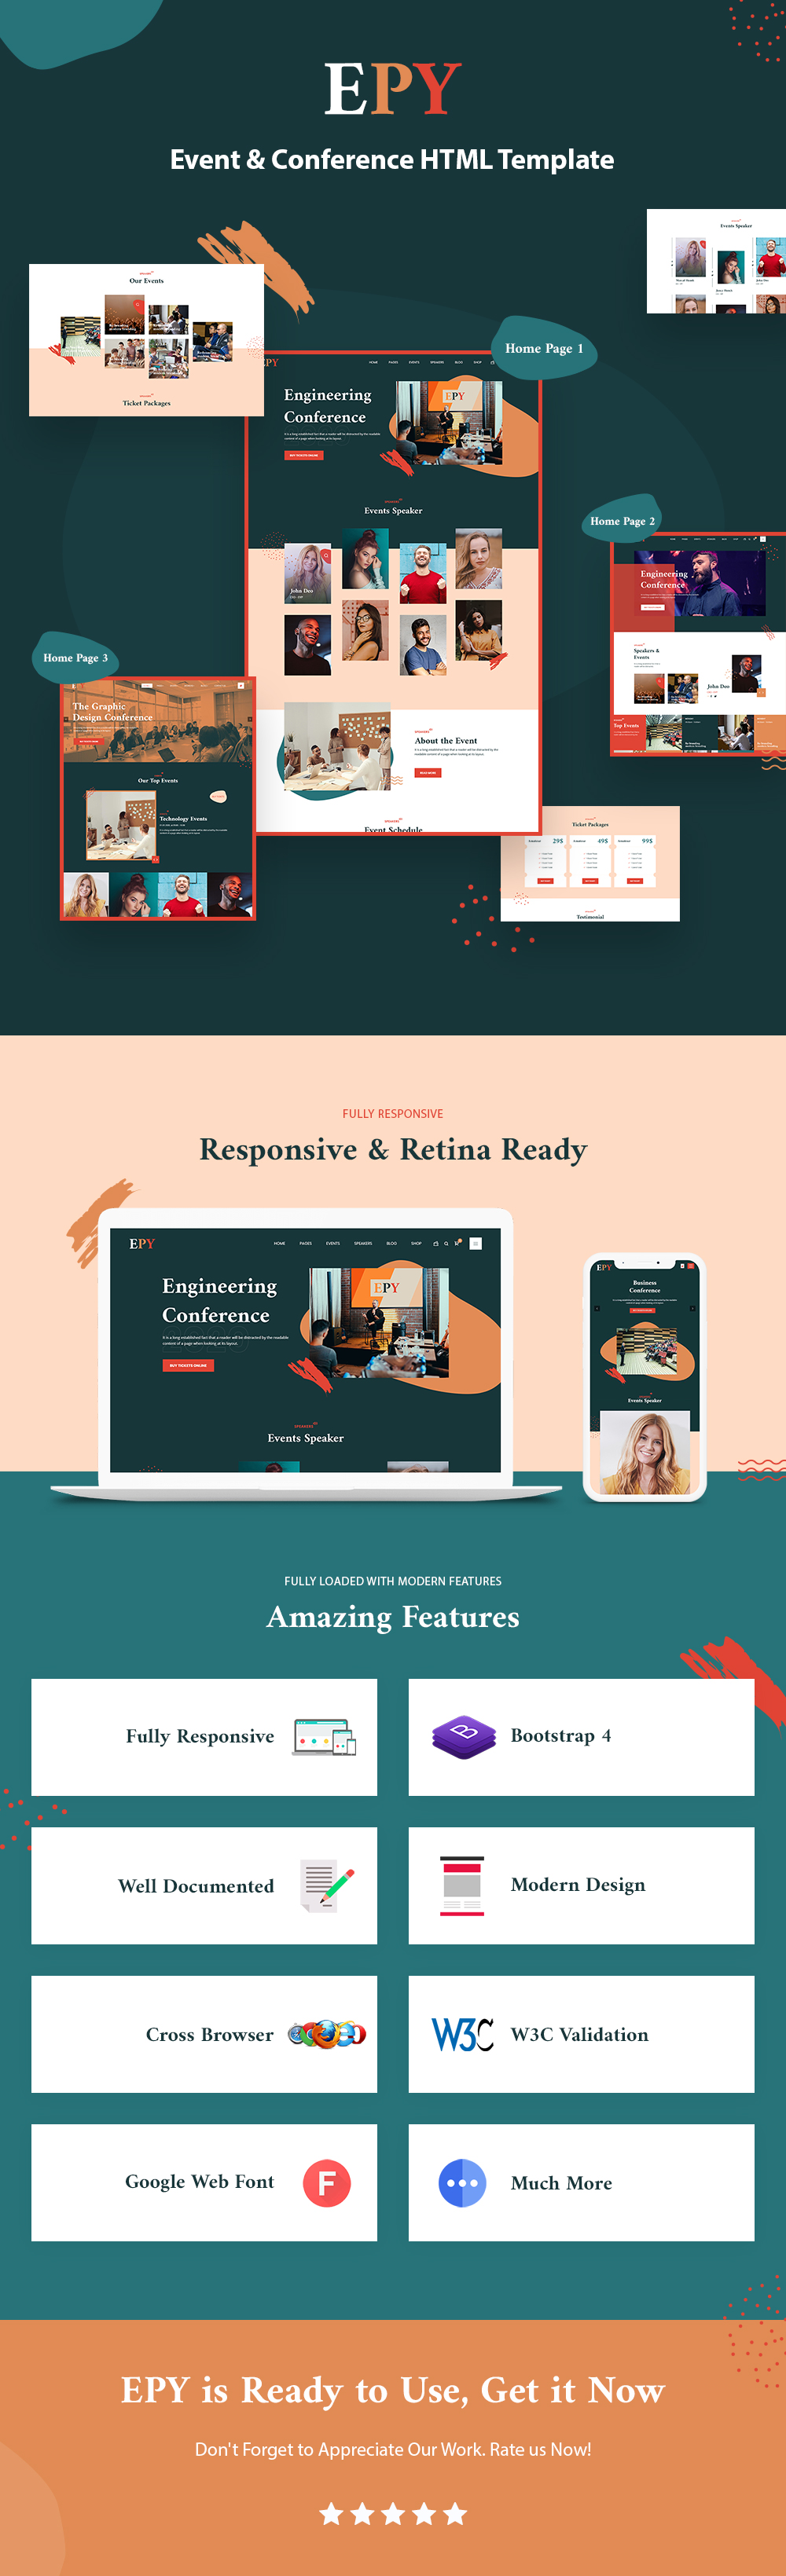 EPY - Event and conference HTML, Bootstrap Template - 1 event and conference html bootstrap template EPY live preview